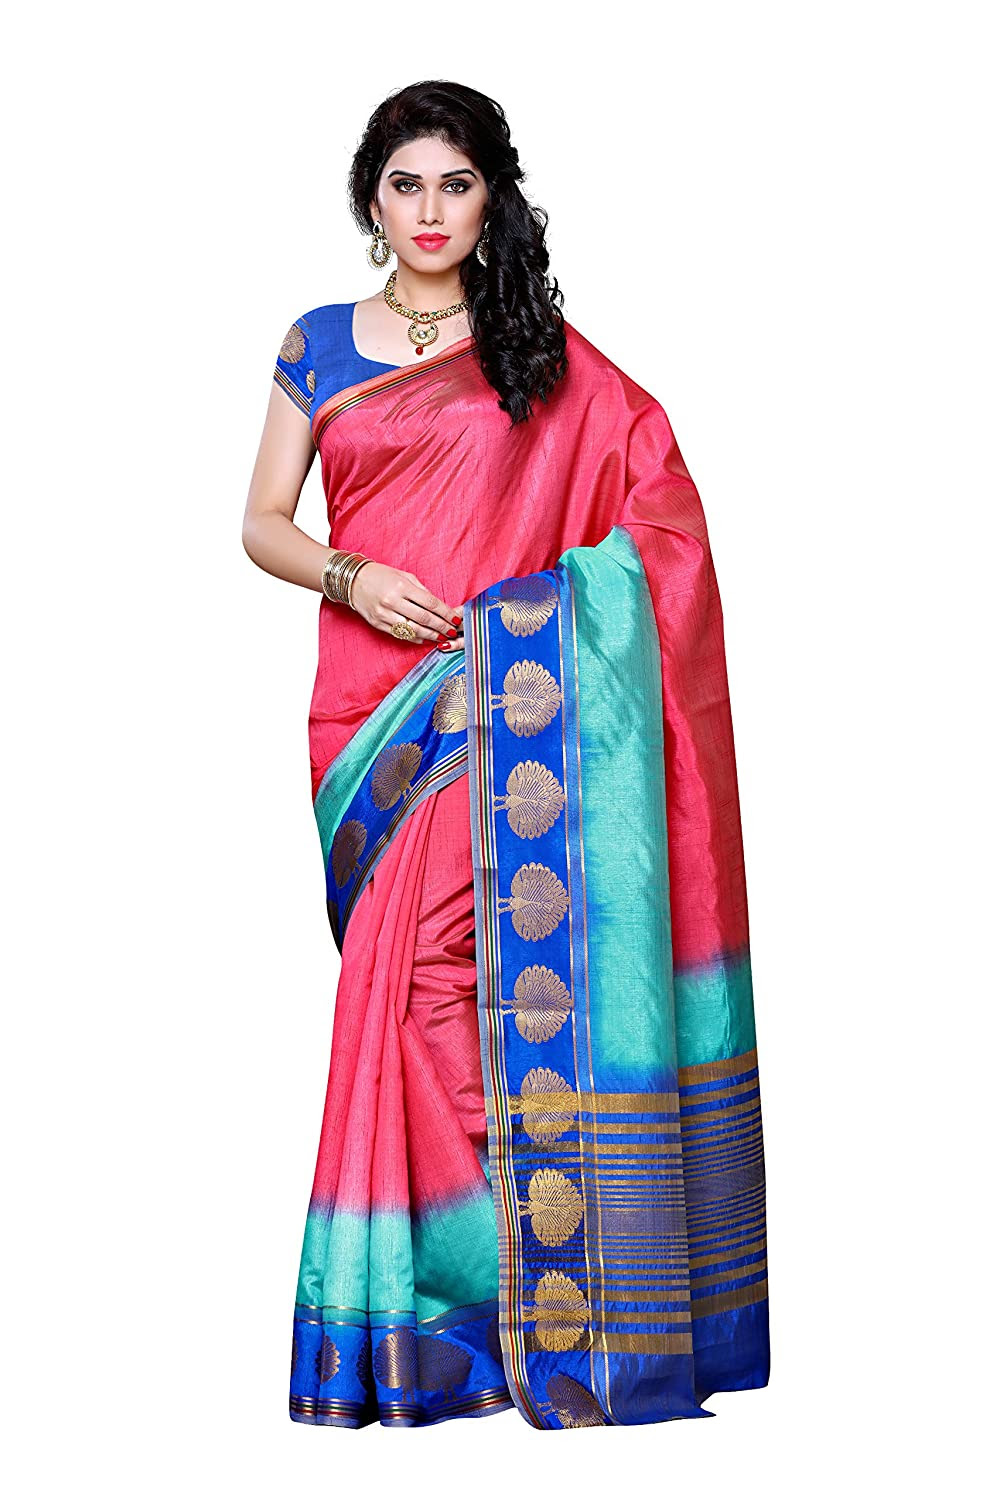 Mimosa Women's Traditional Art Silk Saree Tassar Silk With Blouse